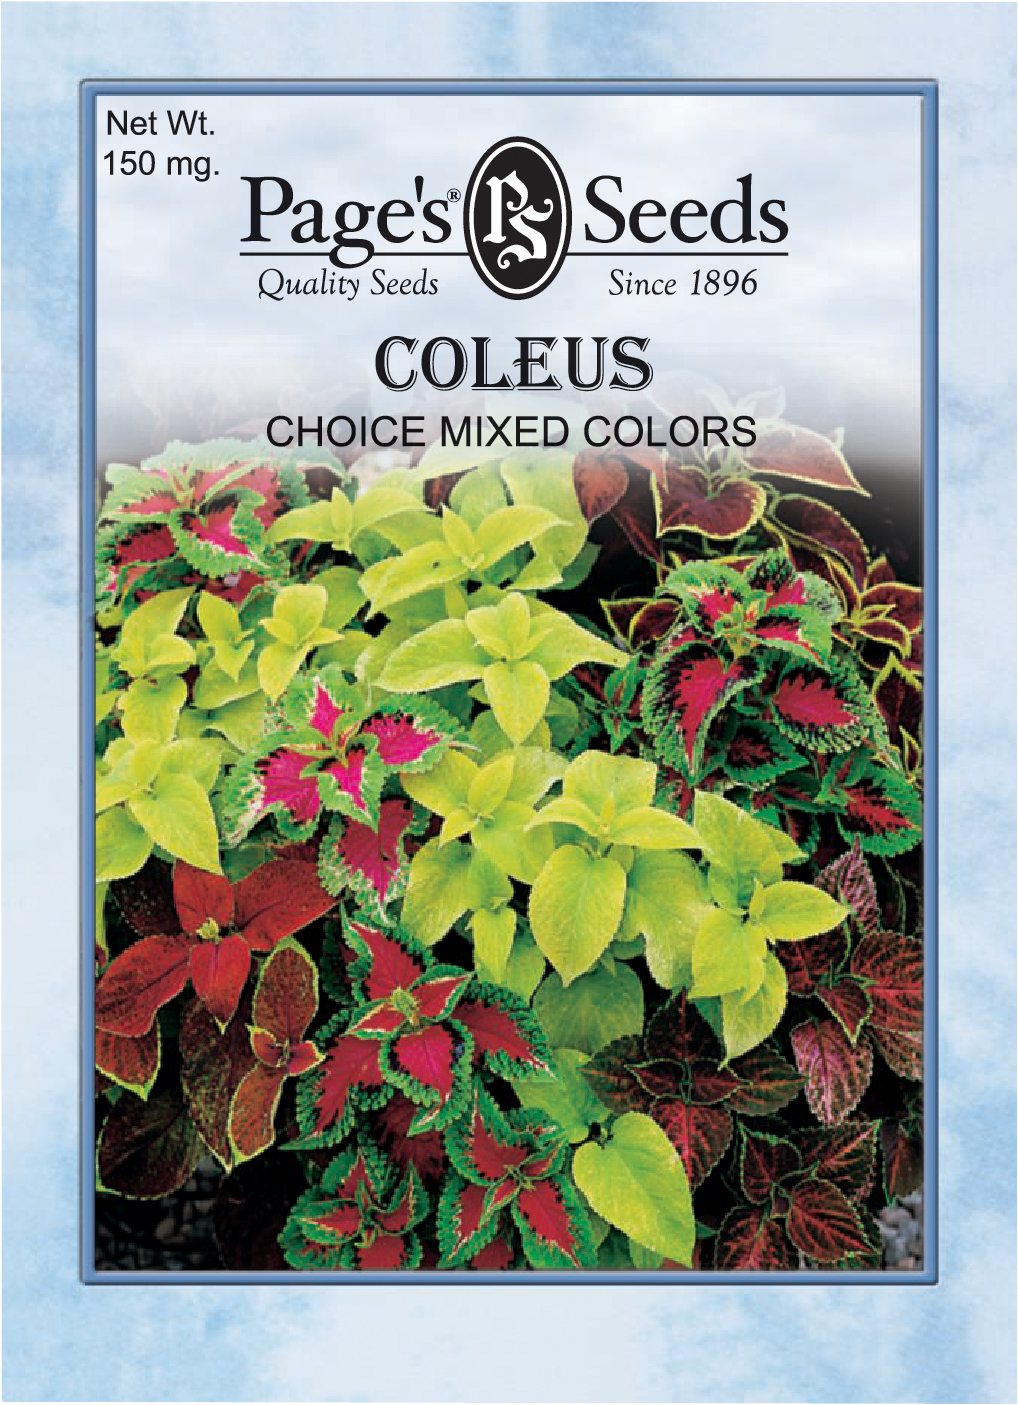 Coleus Choice Mixed Colors The Page Seed Company Inc